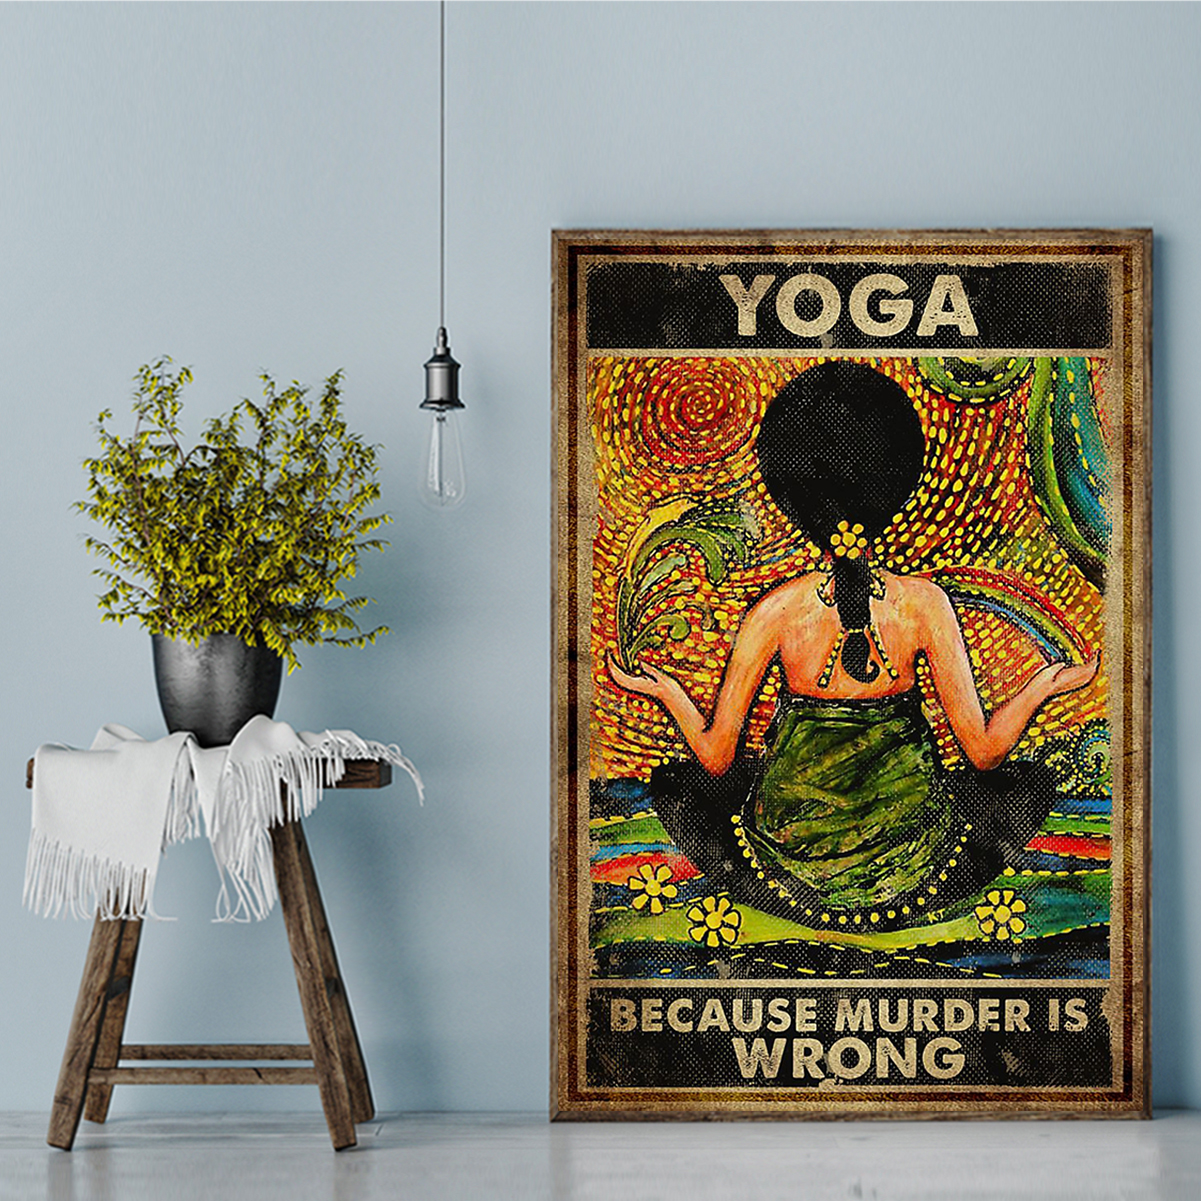 Yoga because murder is wrong poster A1